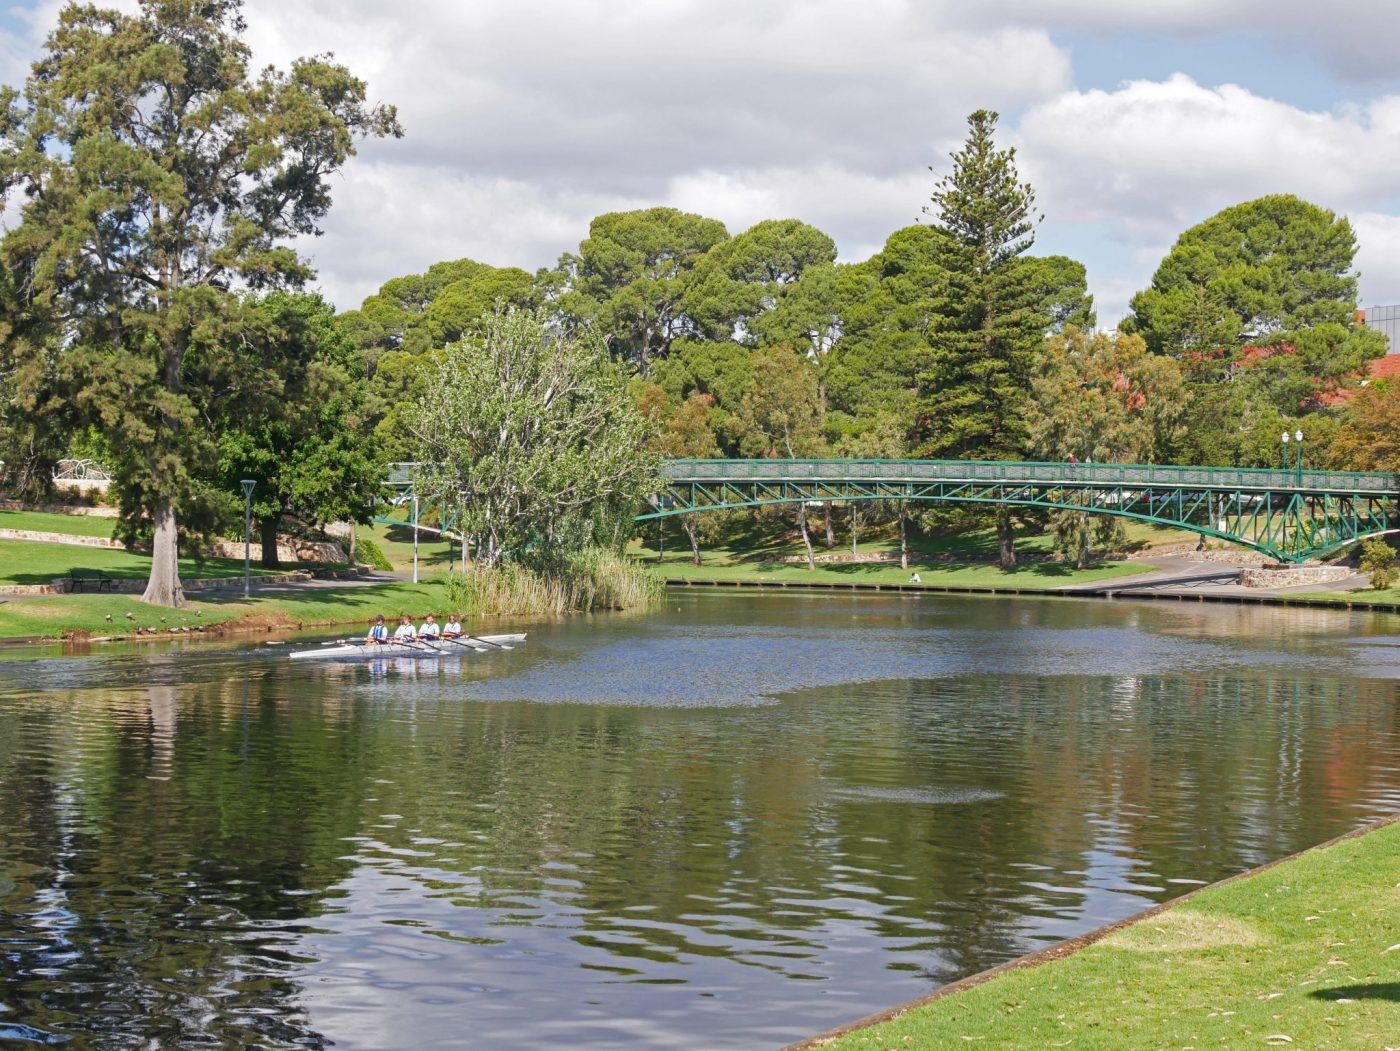 Rowers on the river - what to do in Adelaide